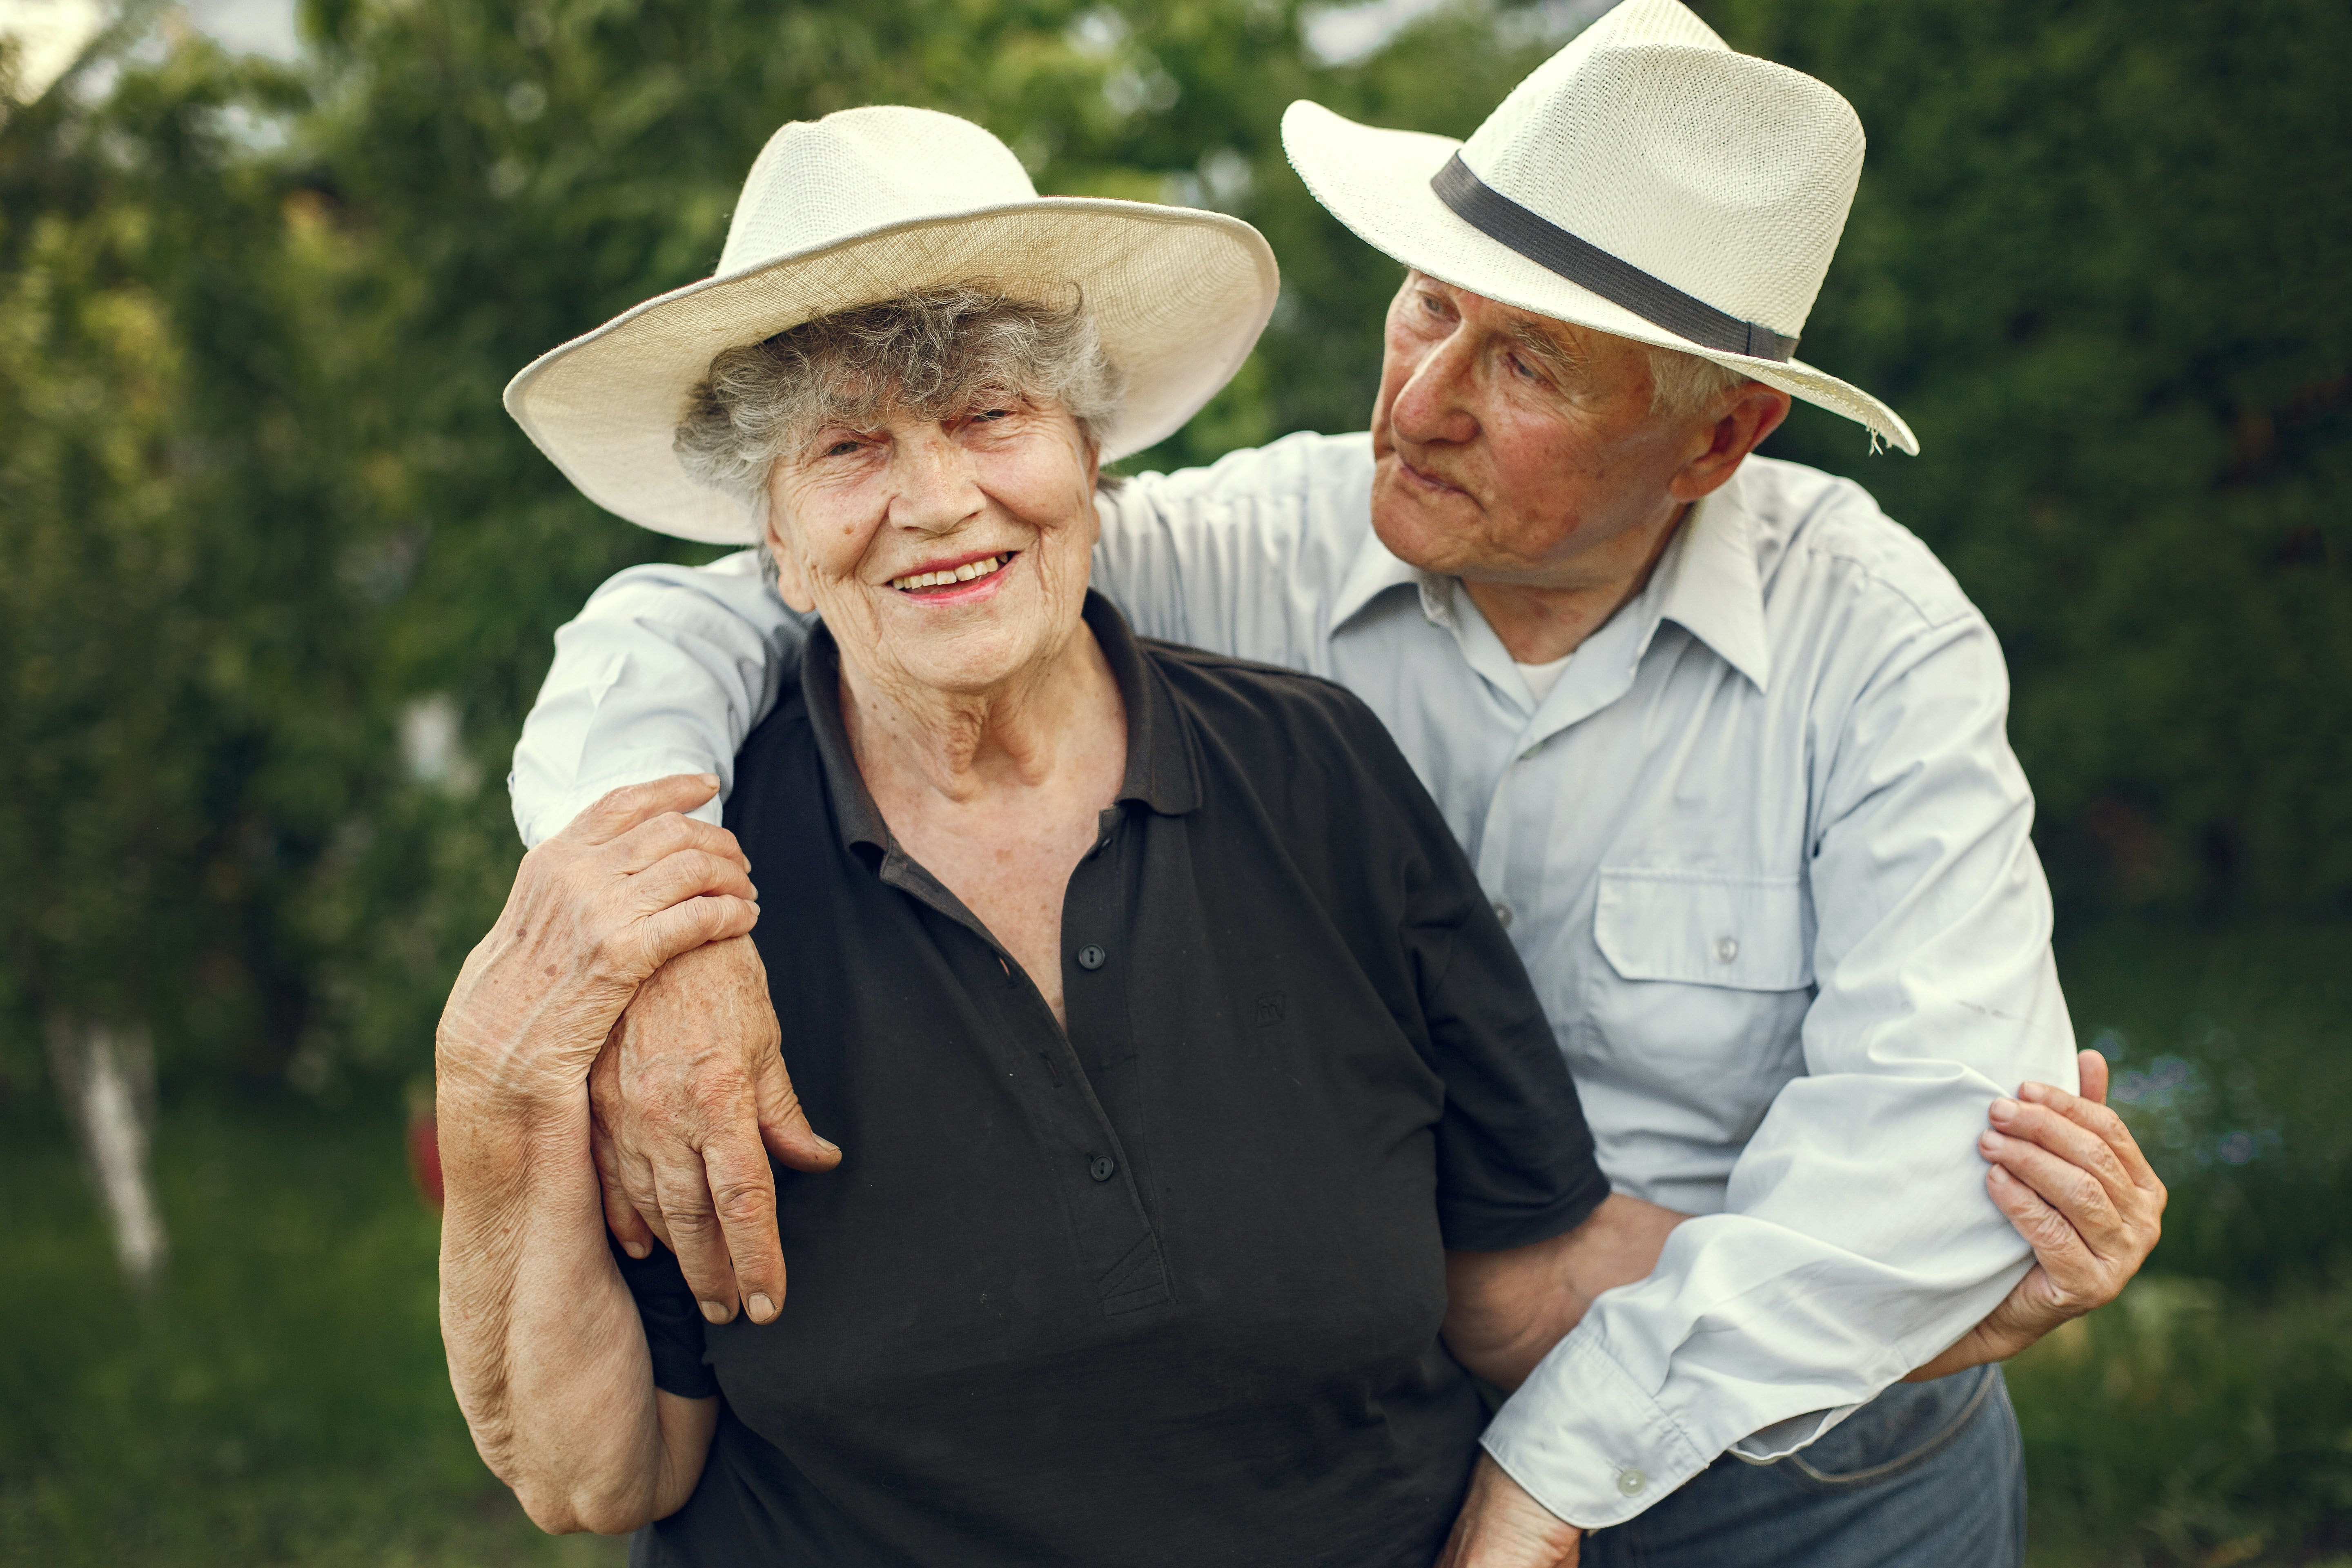 Elderly couple embracing each other.   Source: Pexels/ Gustavo Fring